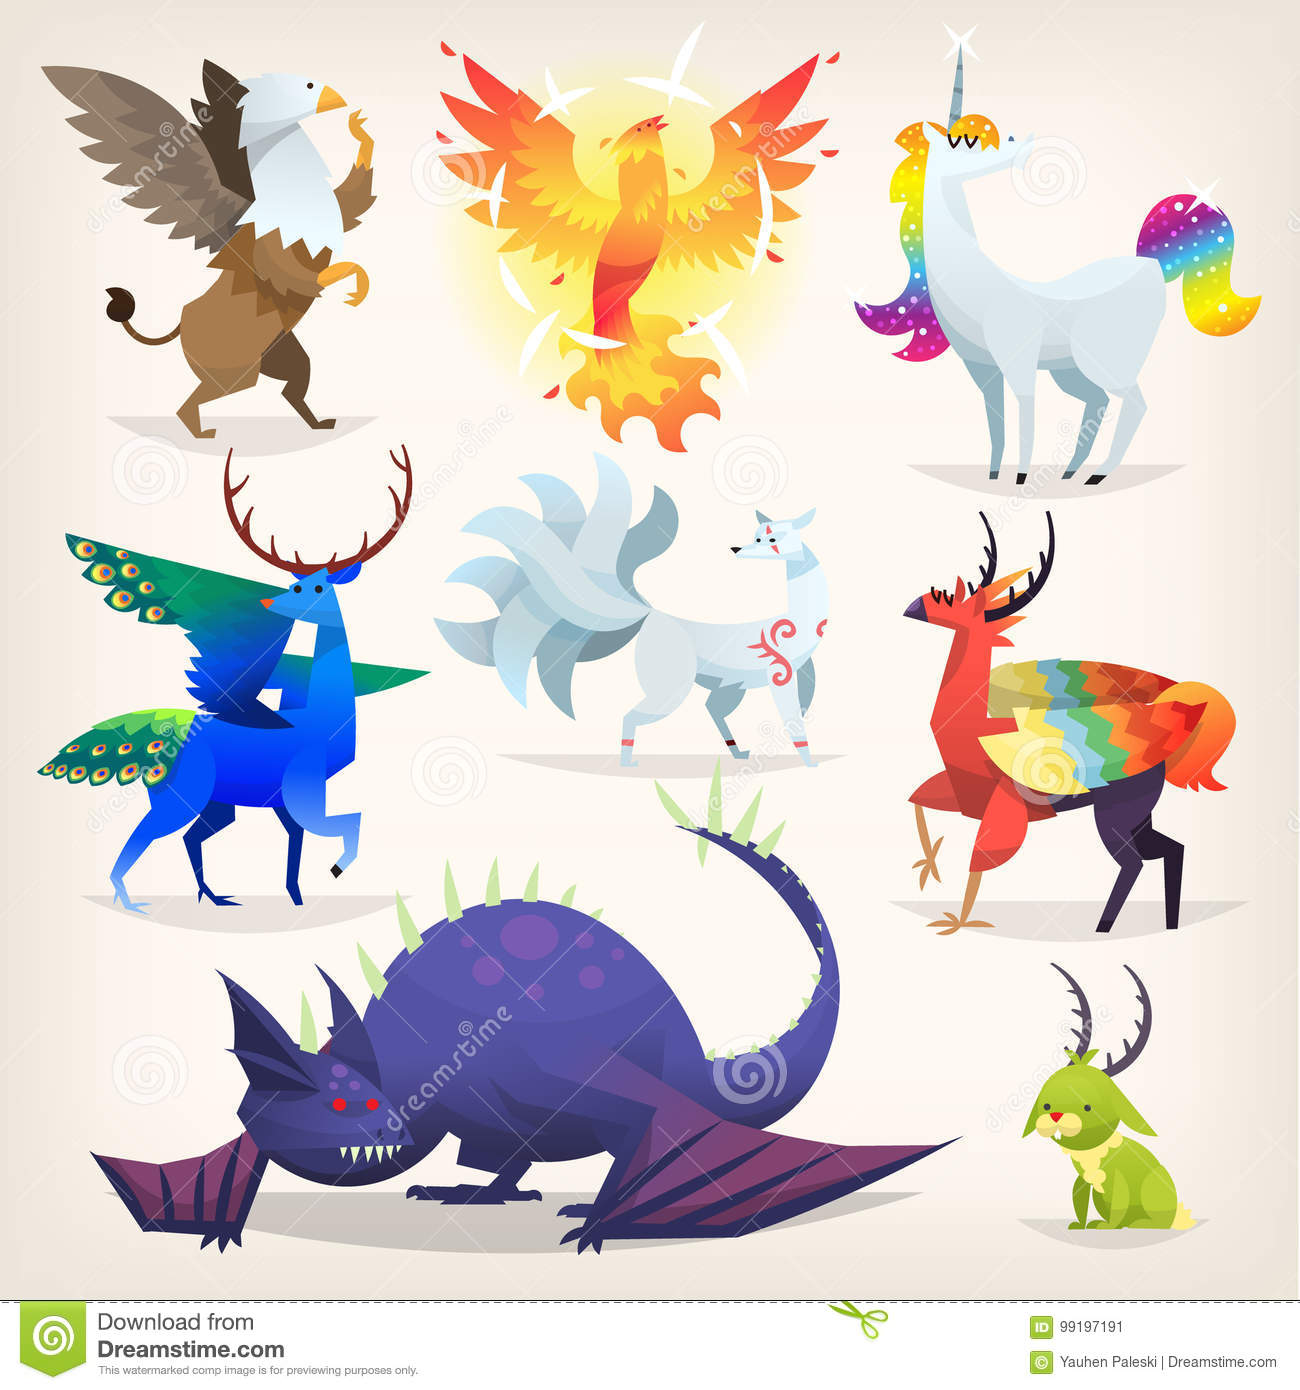 imaginary animals fairy tales creatures fantasy mythological colorful preview